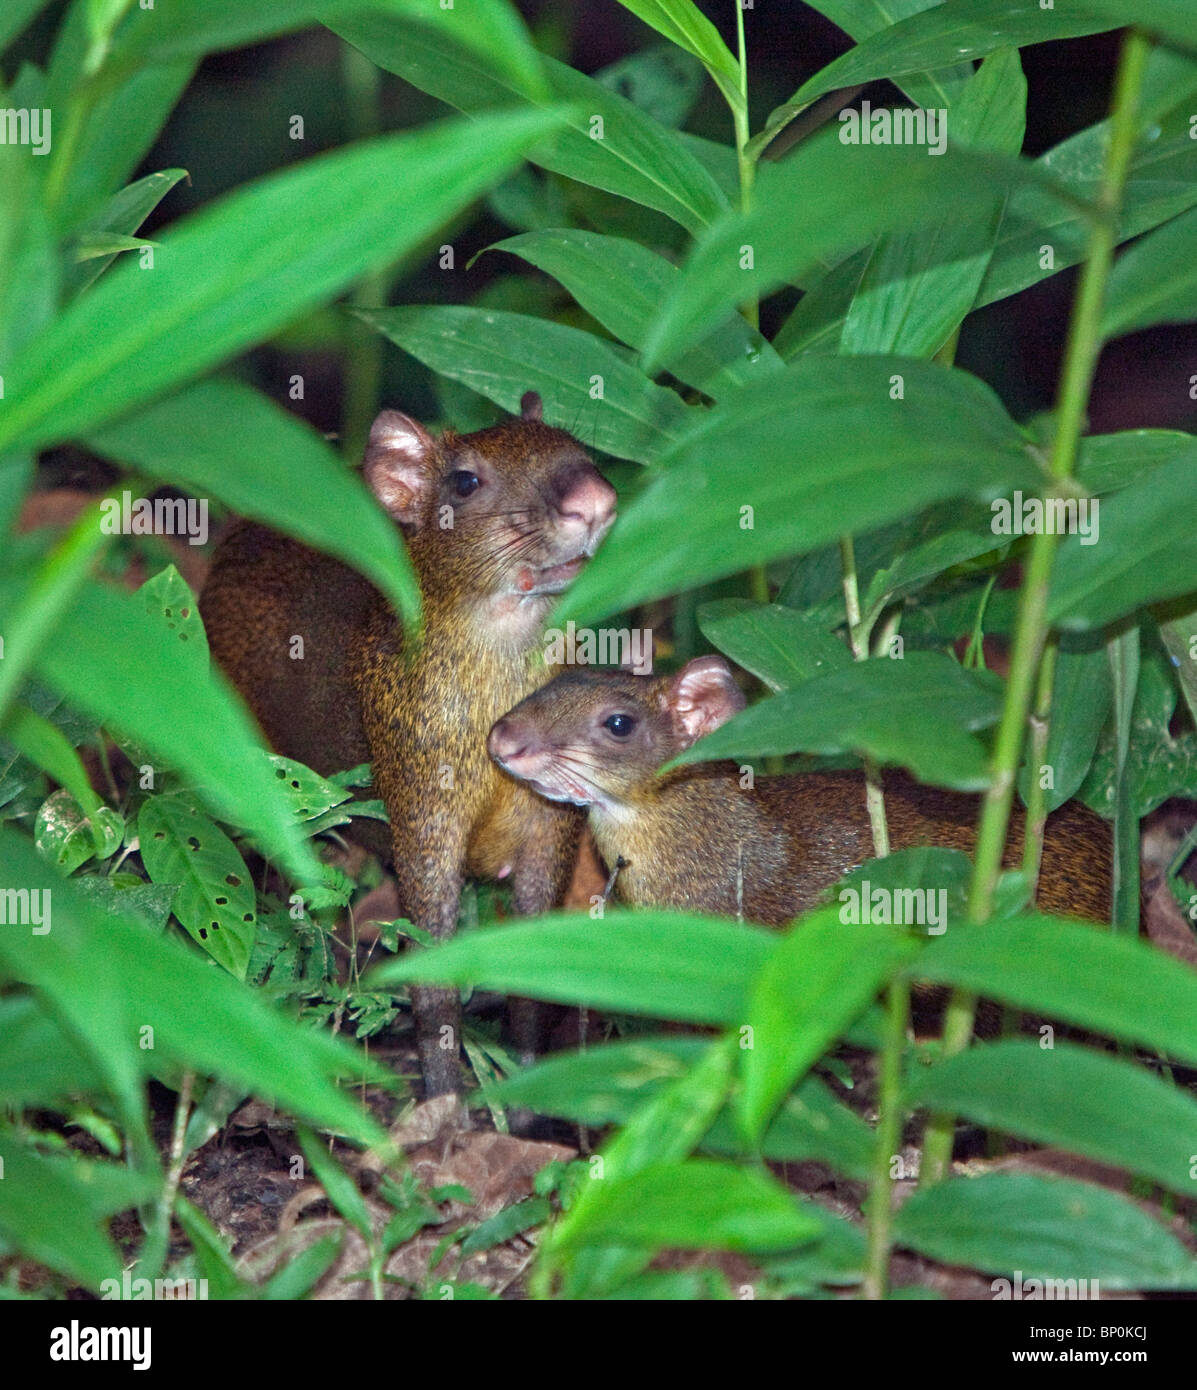 Peru. Brown agutis in the tropical forest of the Amazon Basin. - Stock Image